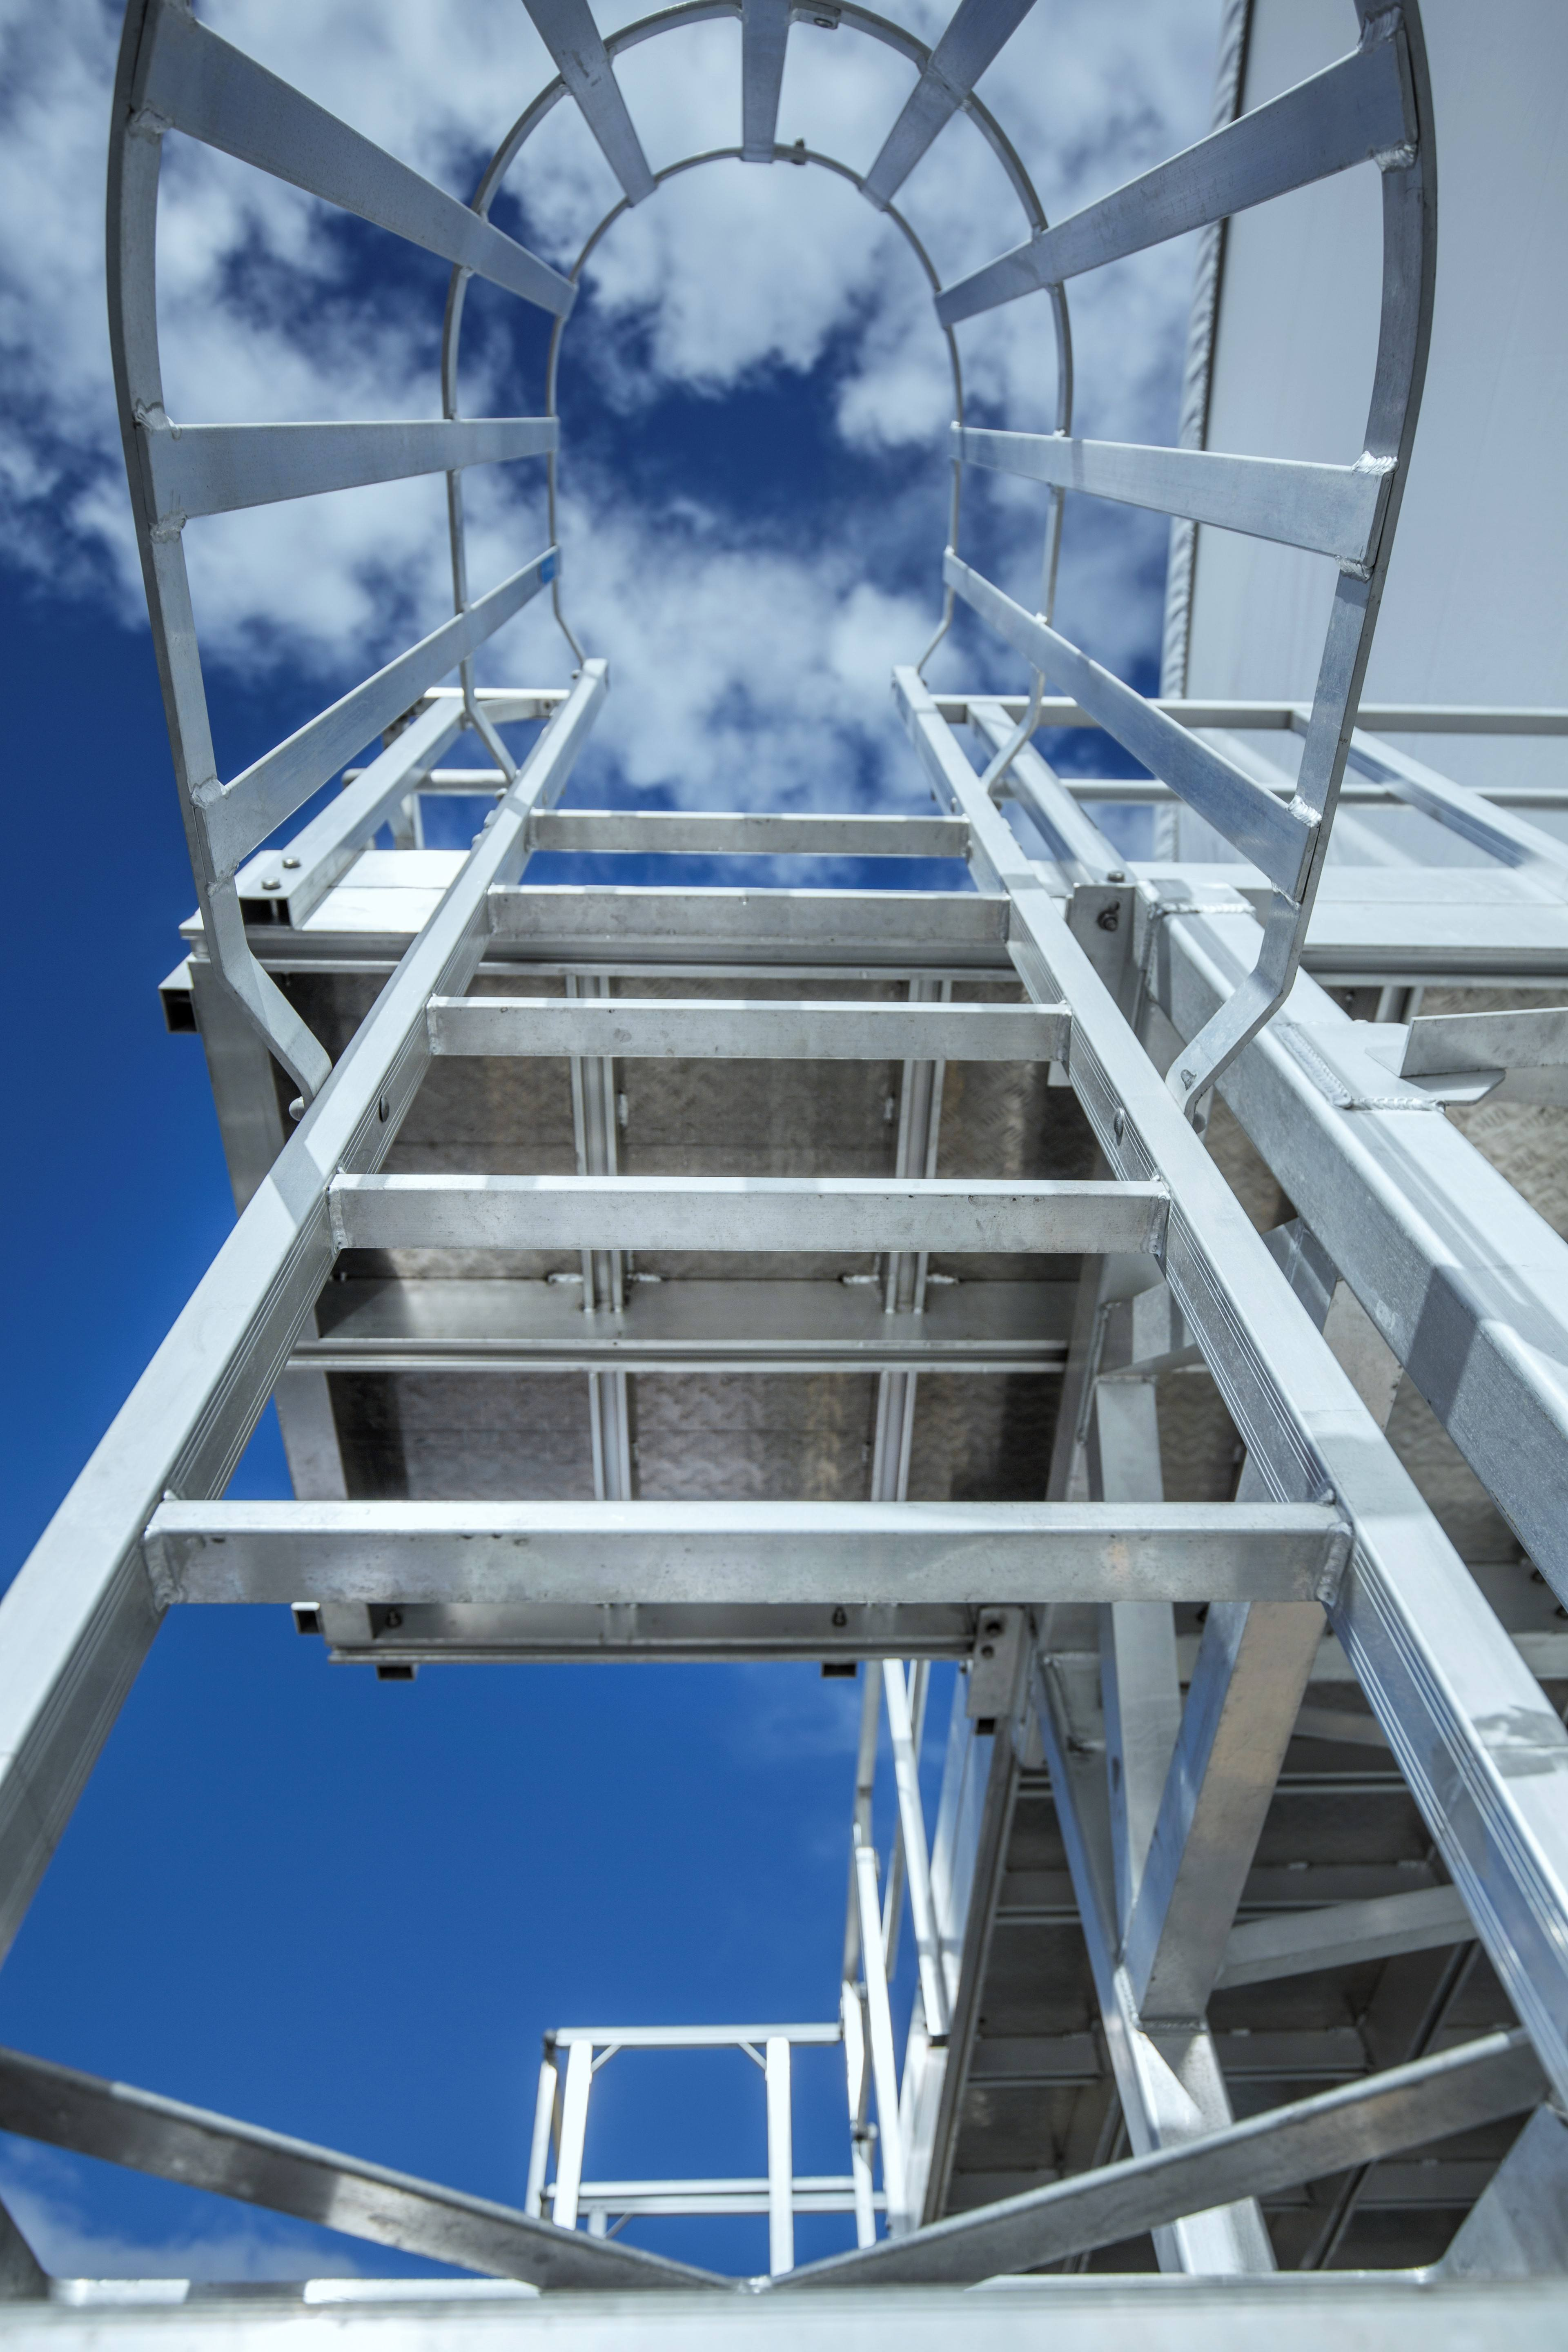 Monkeytoe Roof Access Ladders & Cages | Design, Manufacture